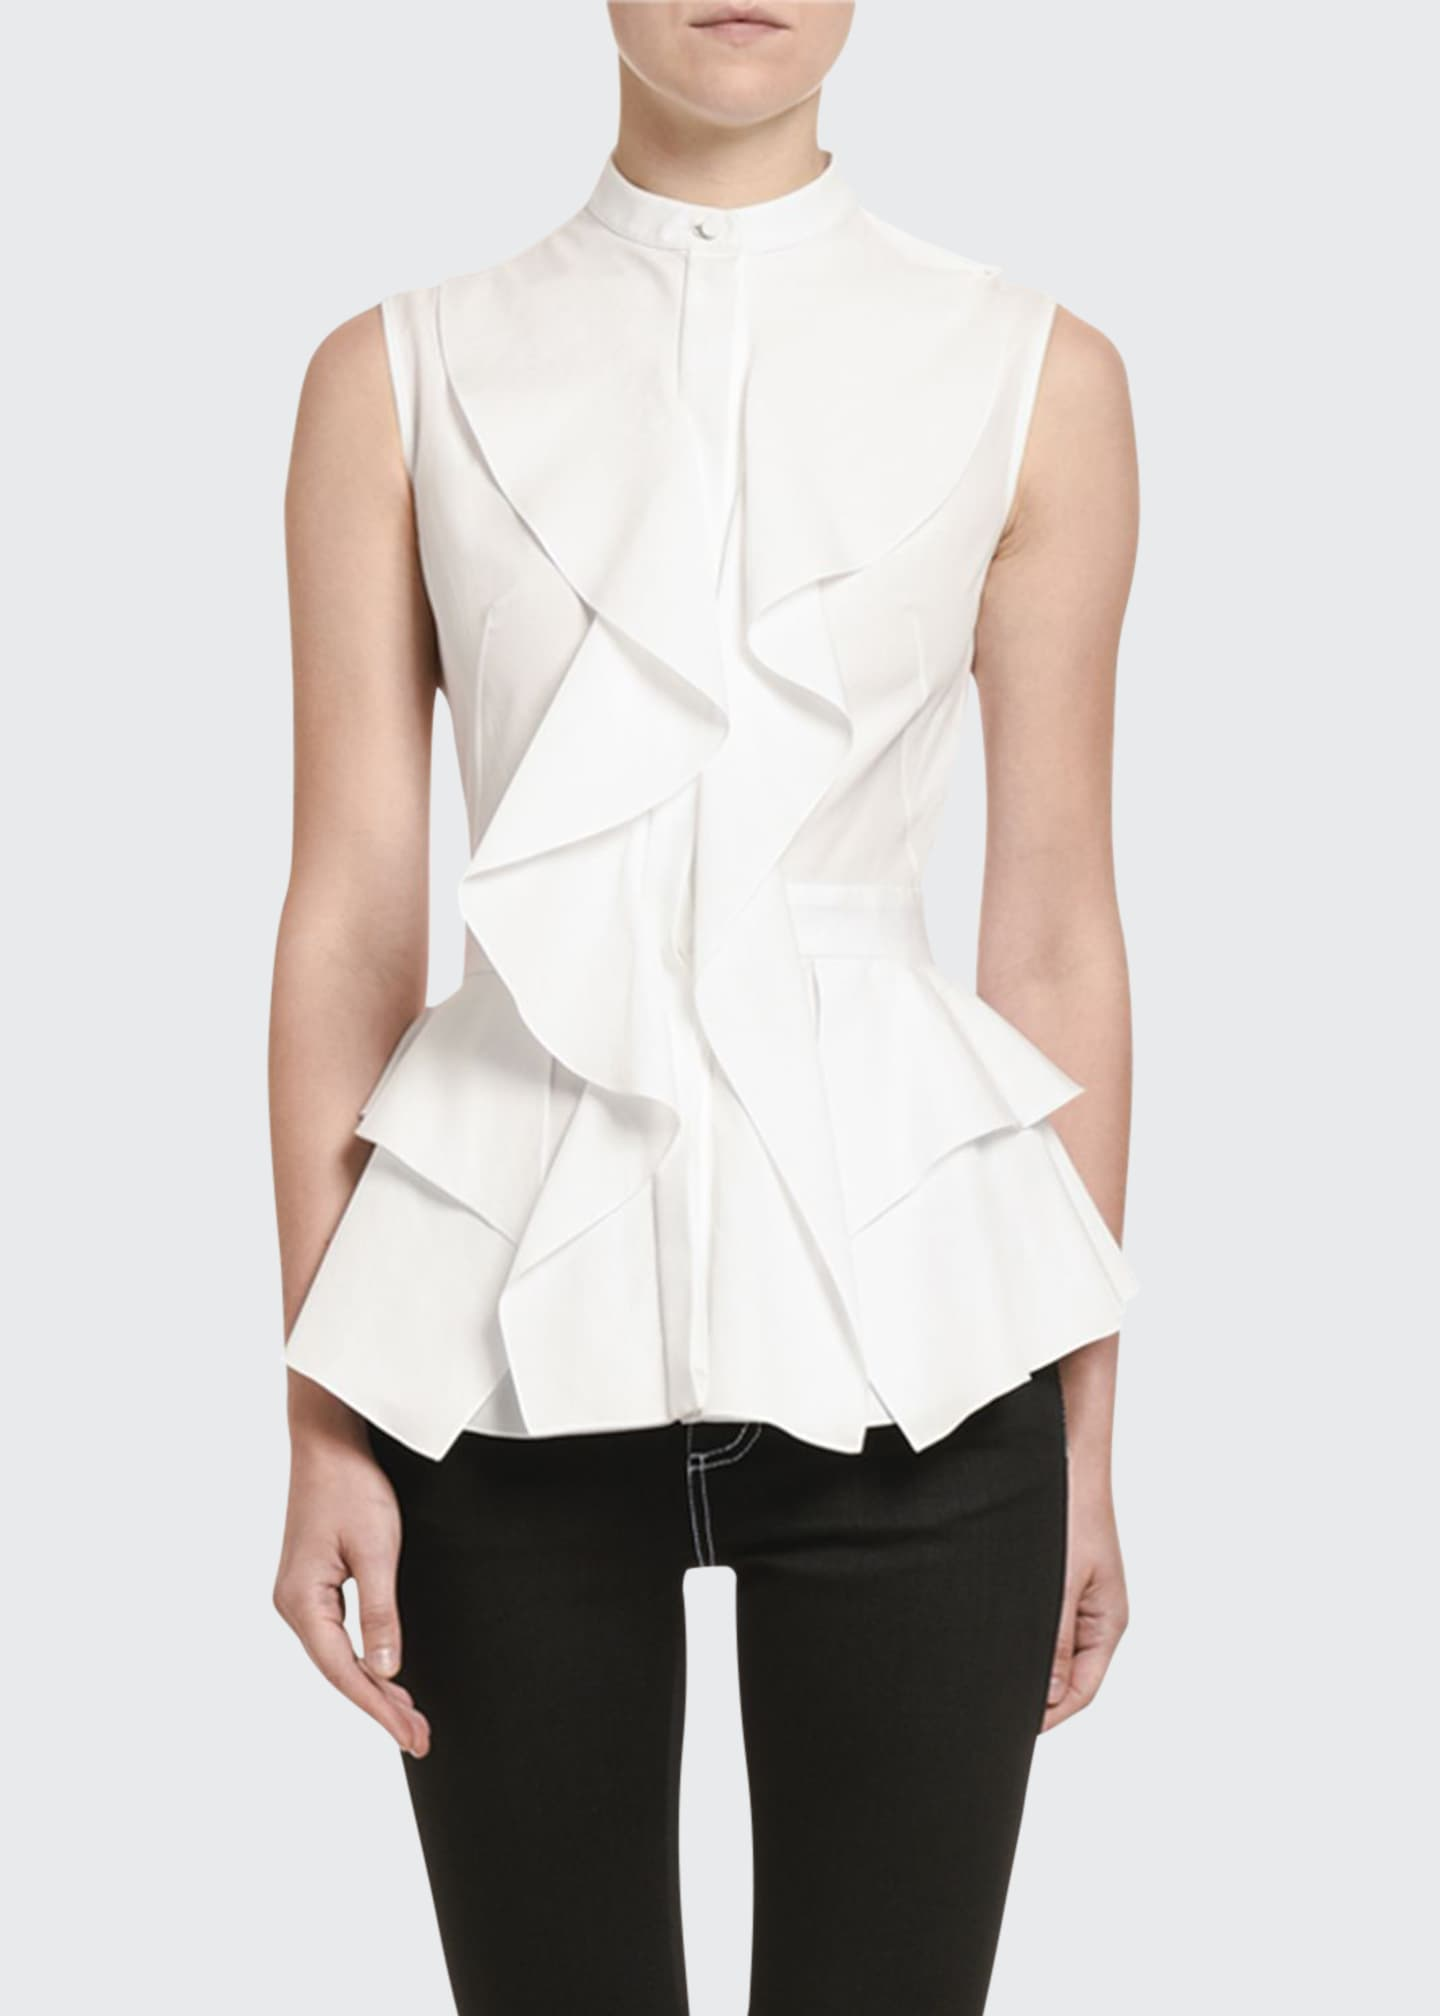 Alexander McQueen Poplin Ruffled-Front Sleeveless Top